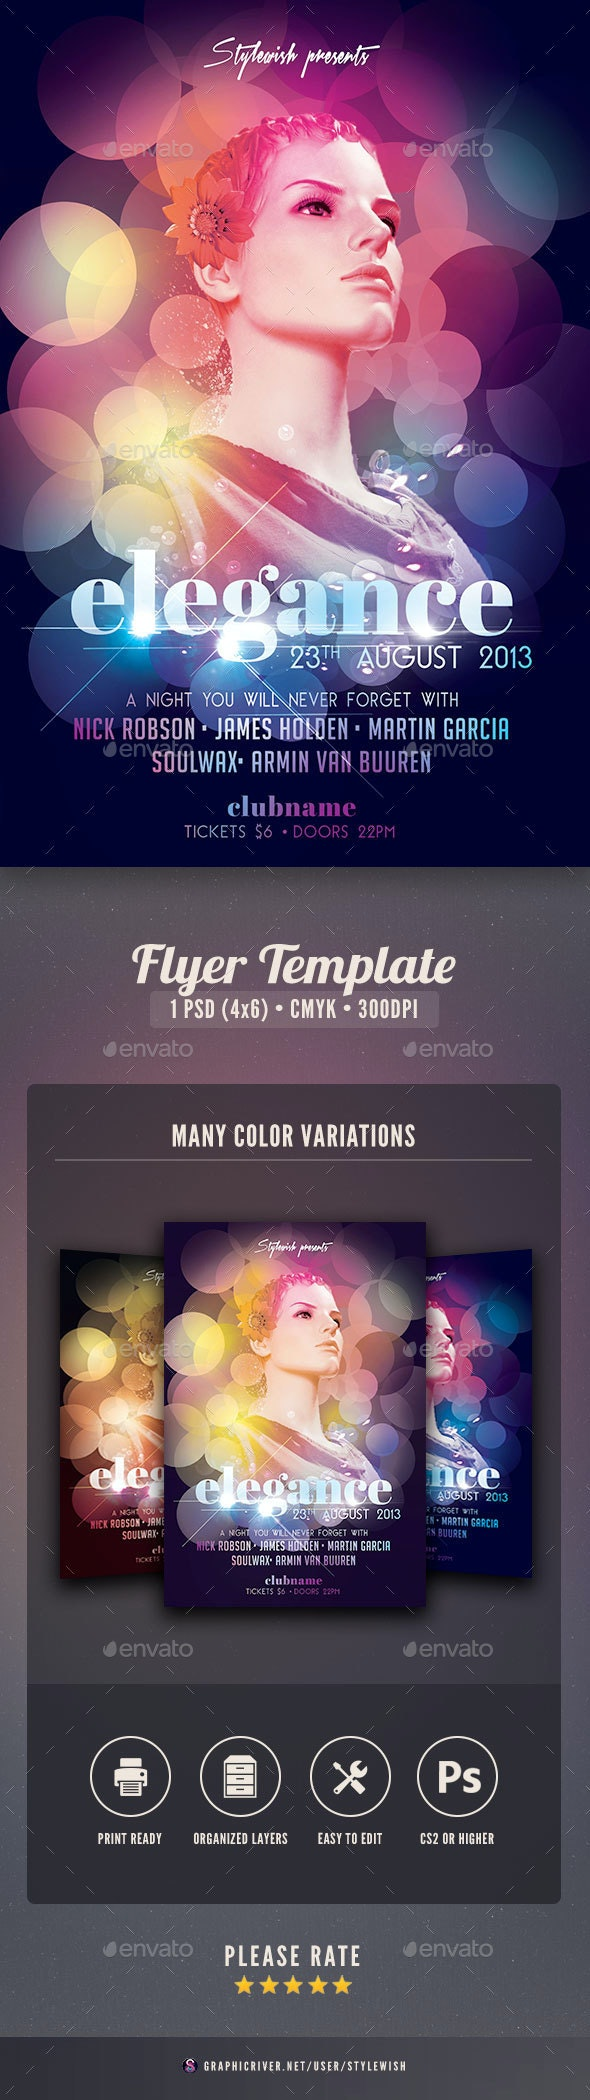 Elegance Flyer - Clubs & Parties Events